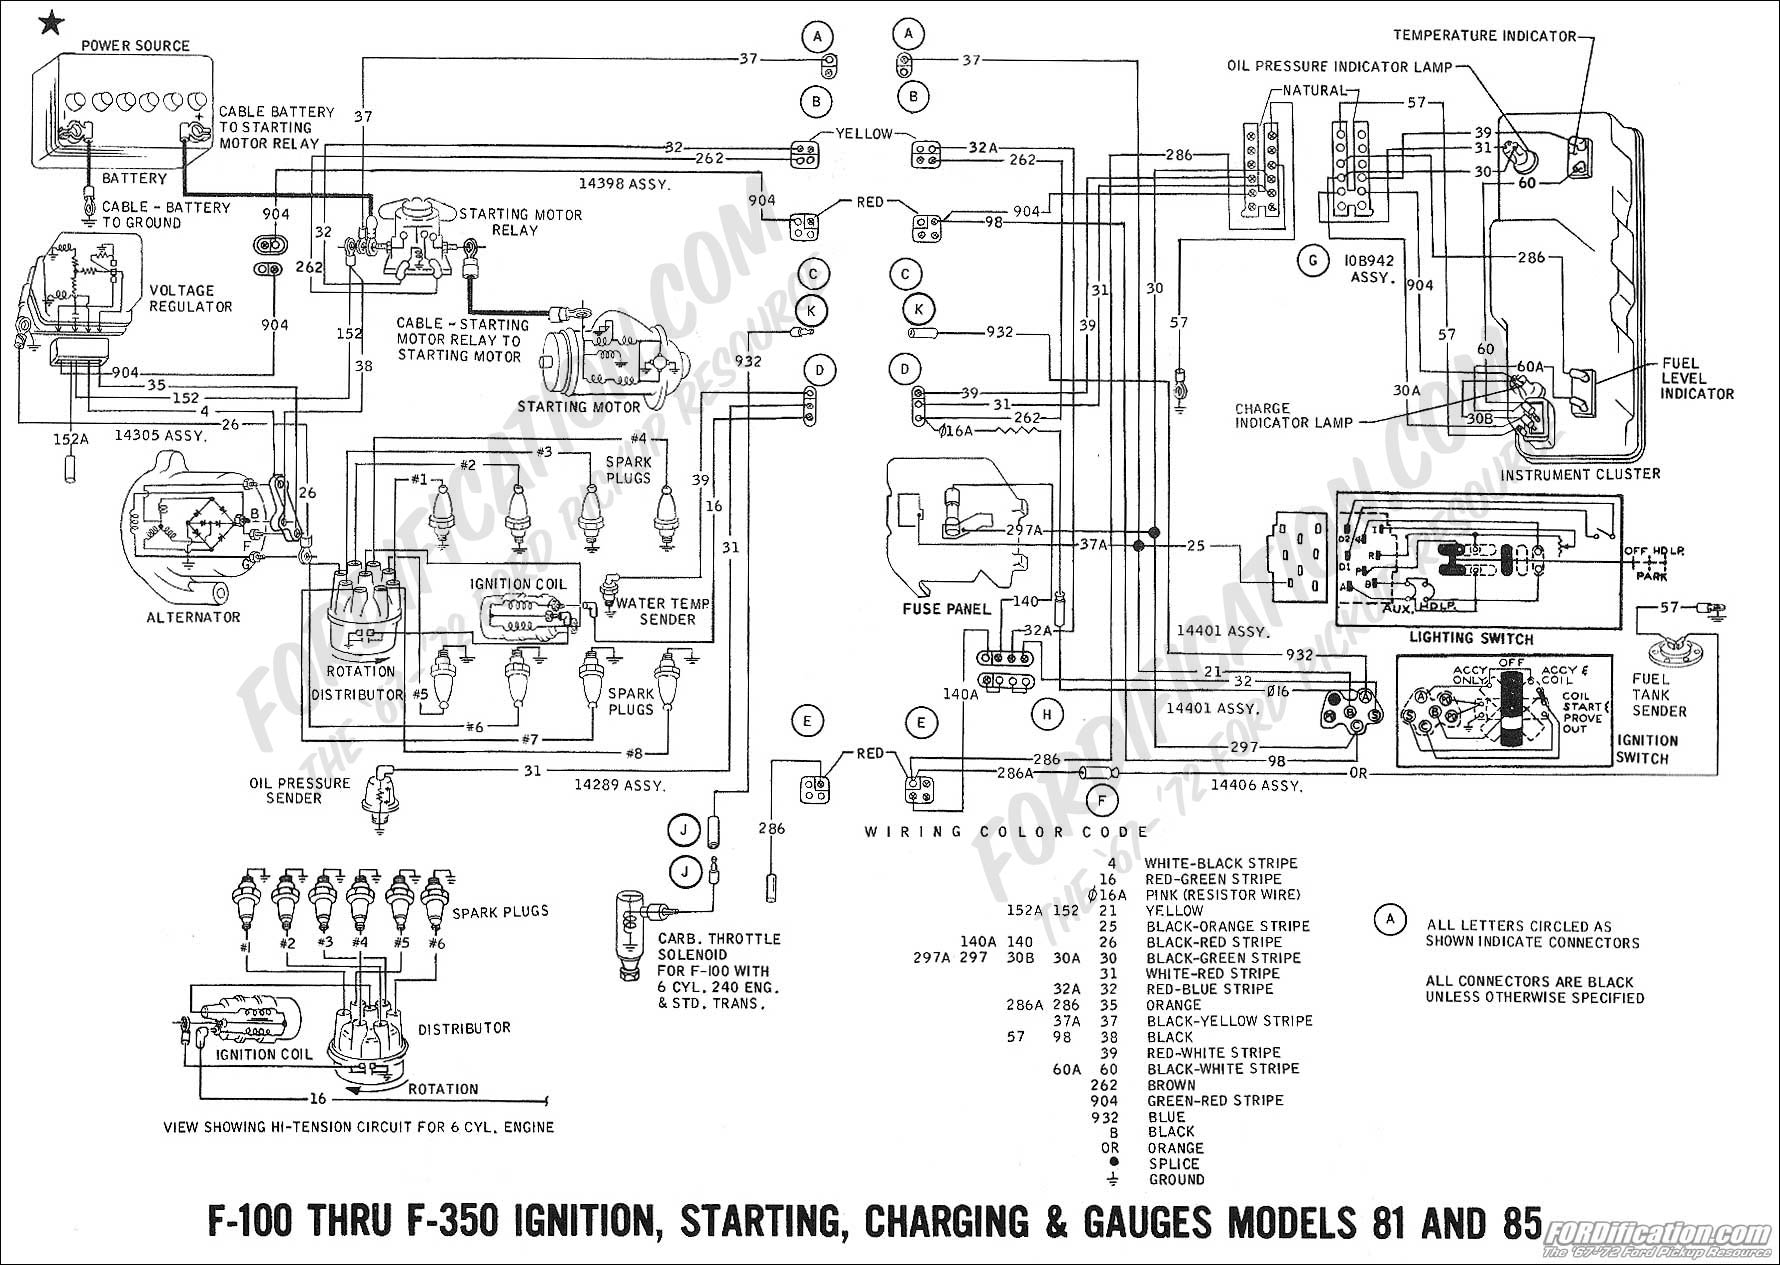 [GJFJ_338]  4B60 87 Corvette Dashboard Wiring Diagram Free Download  1fdf56ea7eaf16f2afbaf61c08c4e6f3 | Wiring Library | 1966 Ford F100 Engine Wiring Diagram Free Picture |  | Wiring Library